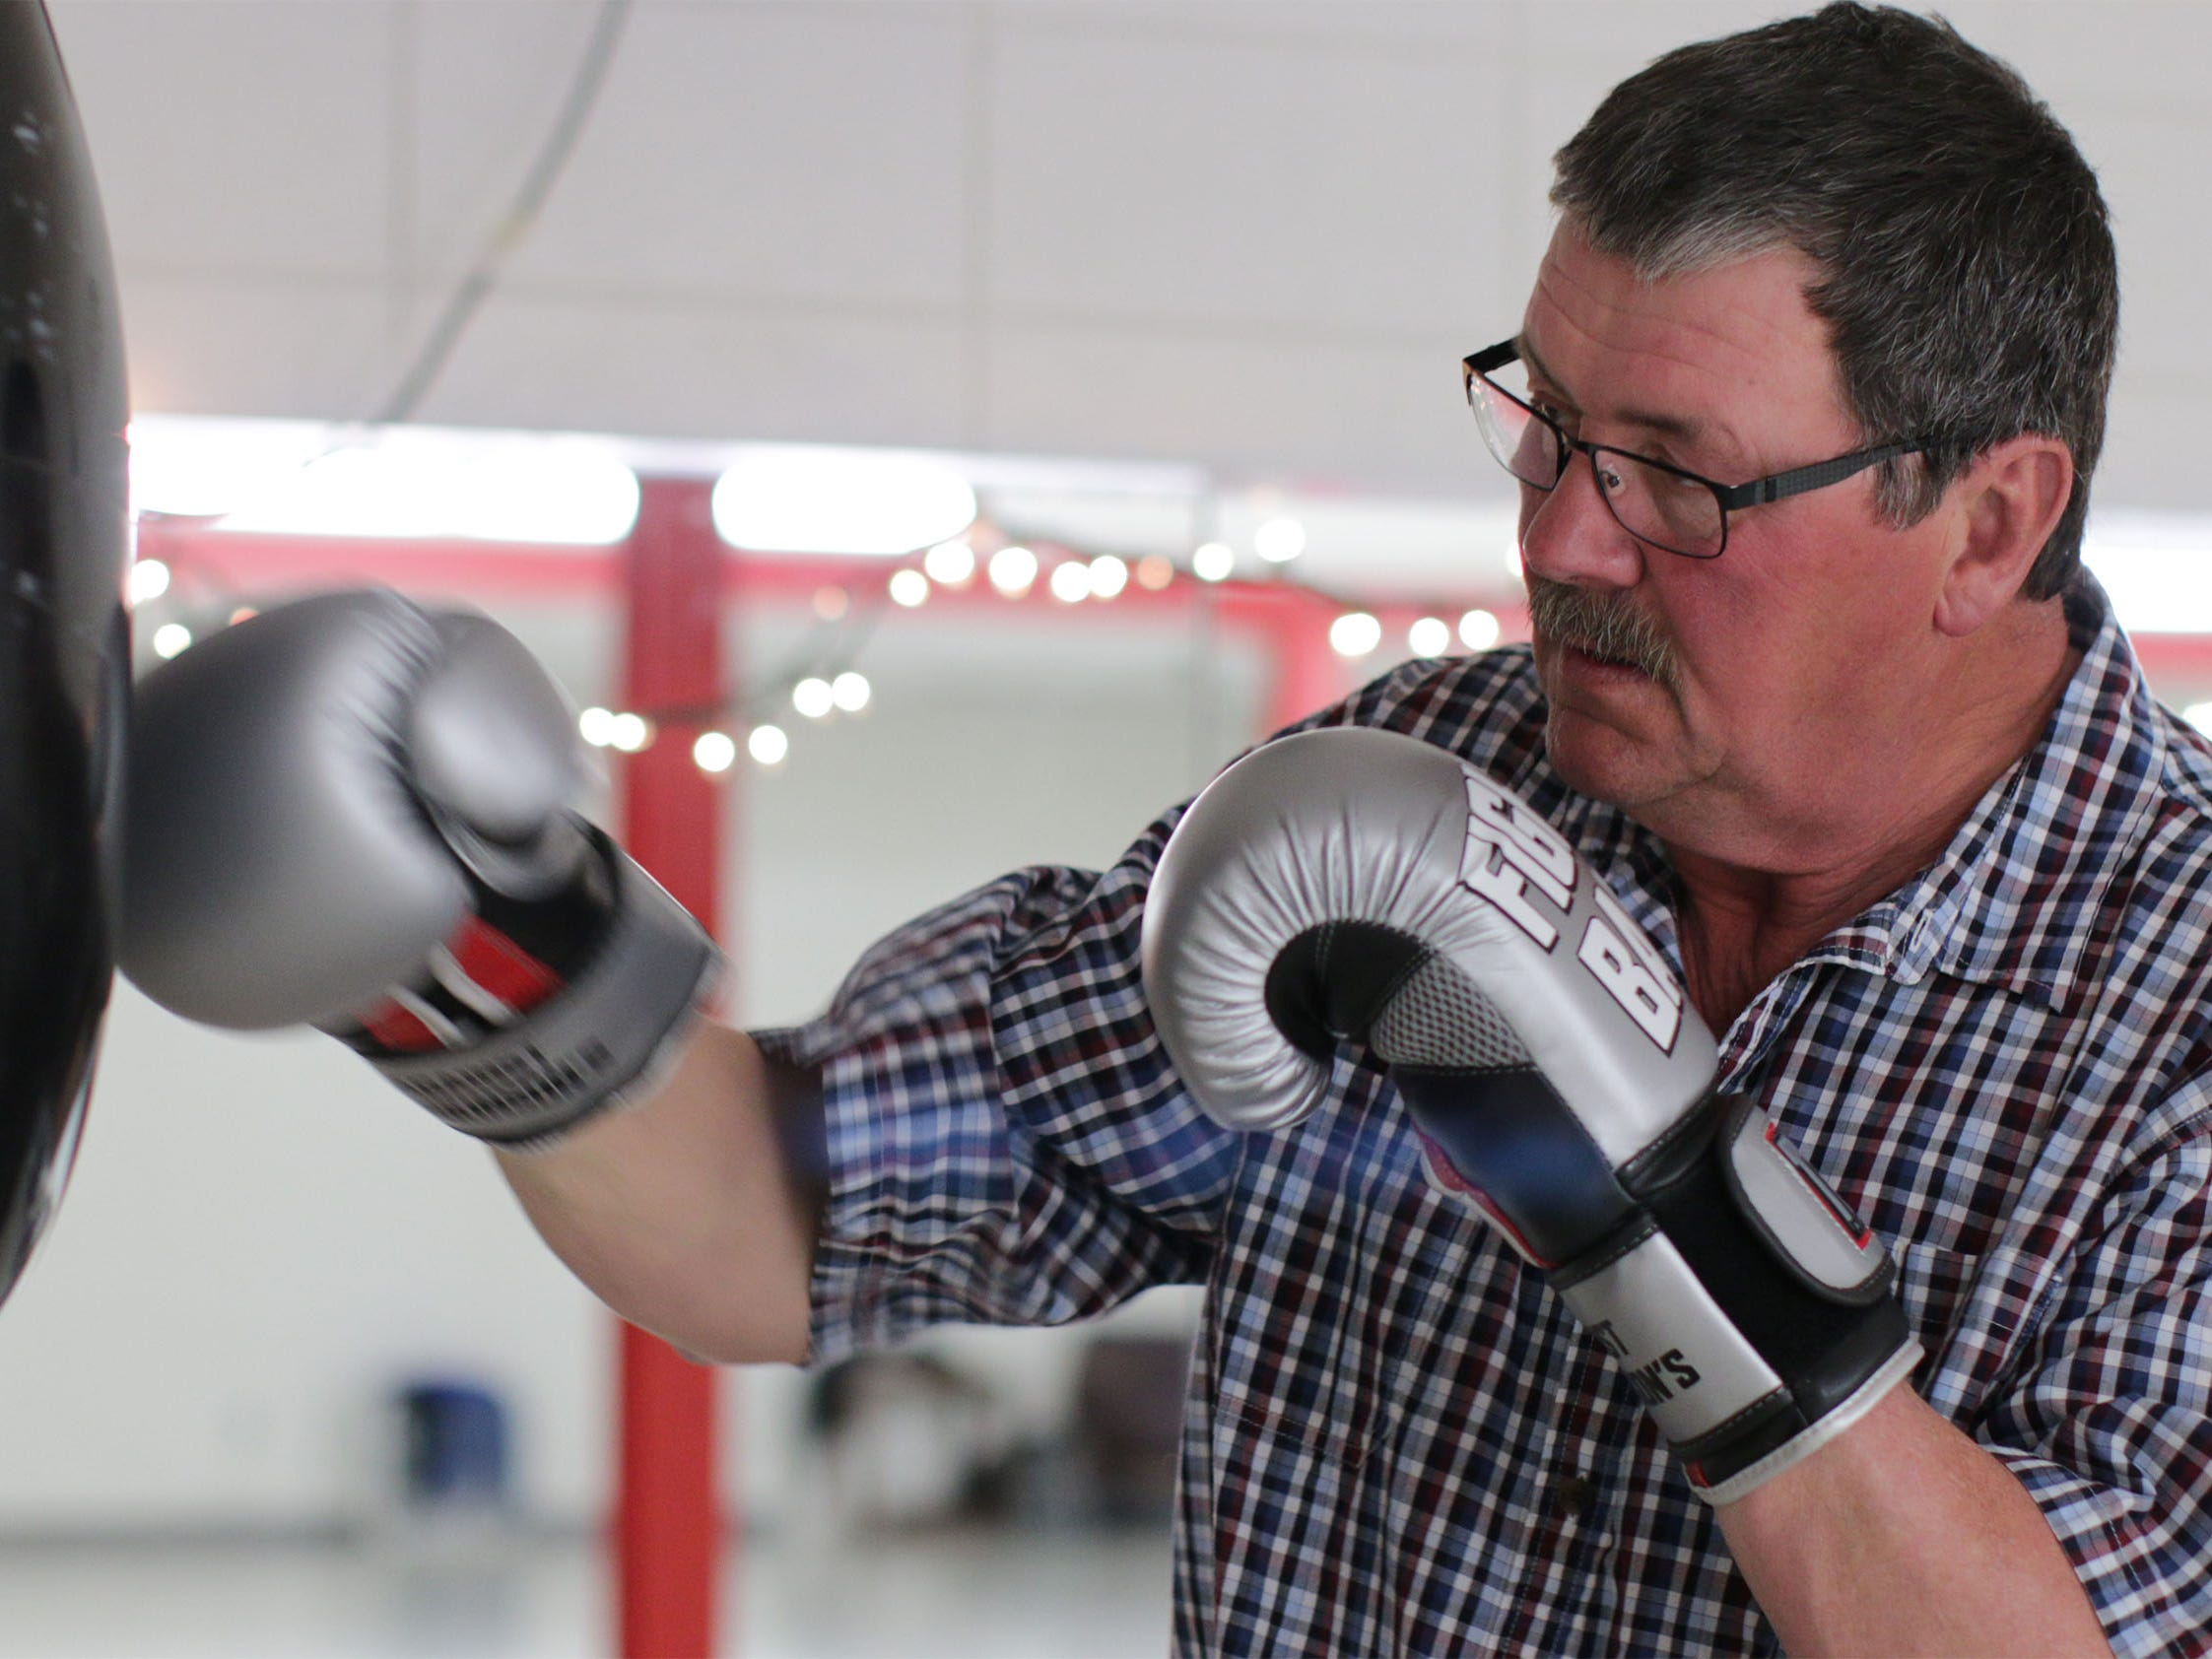 Greg Van Helden of Sheboygan hits the punching bag during the Fighting Parkinson's YMCA, Thursday, March 21, 2019, in Sheboygan, Wis.